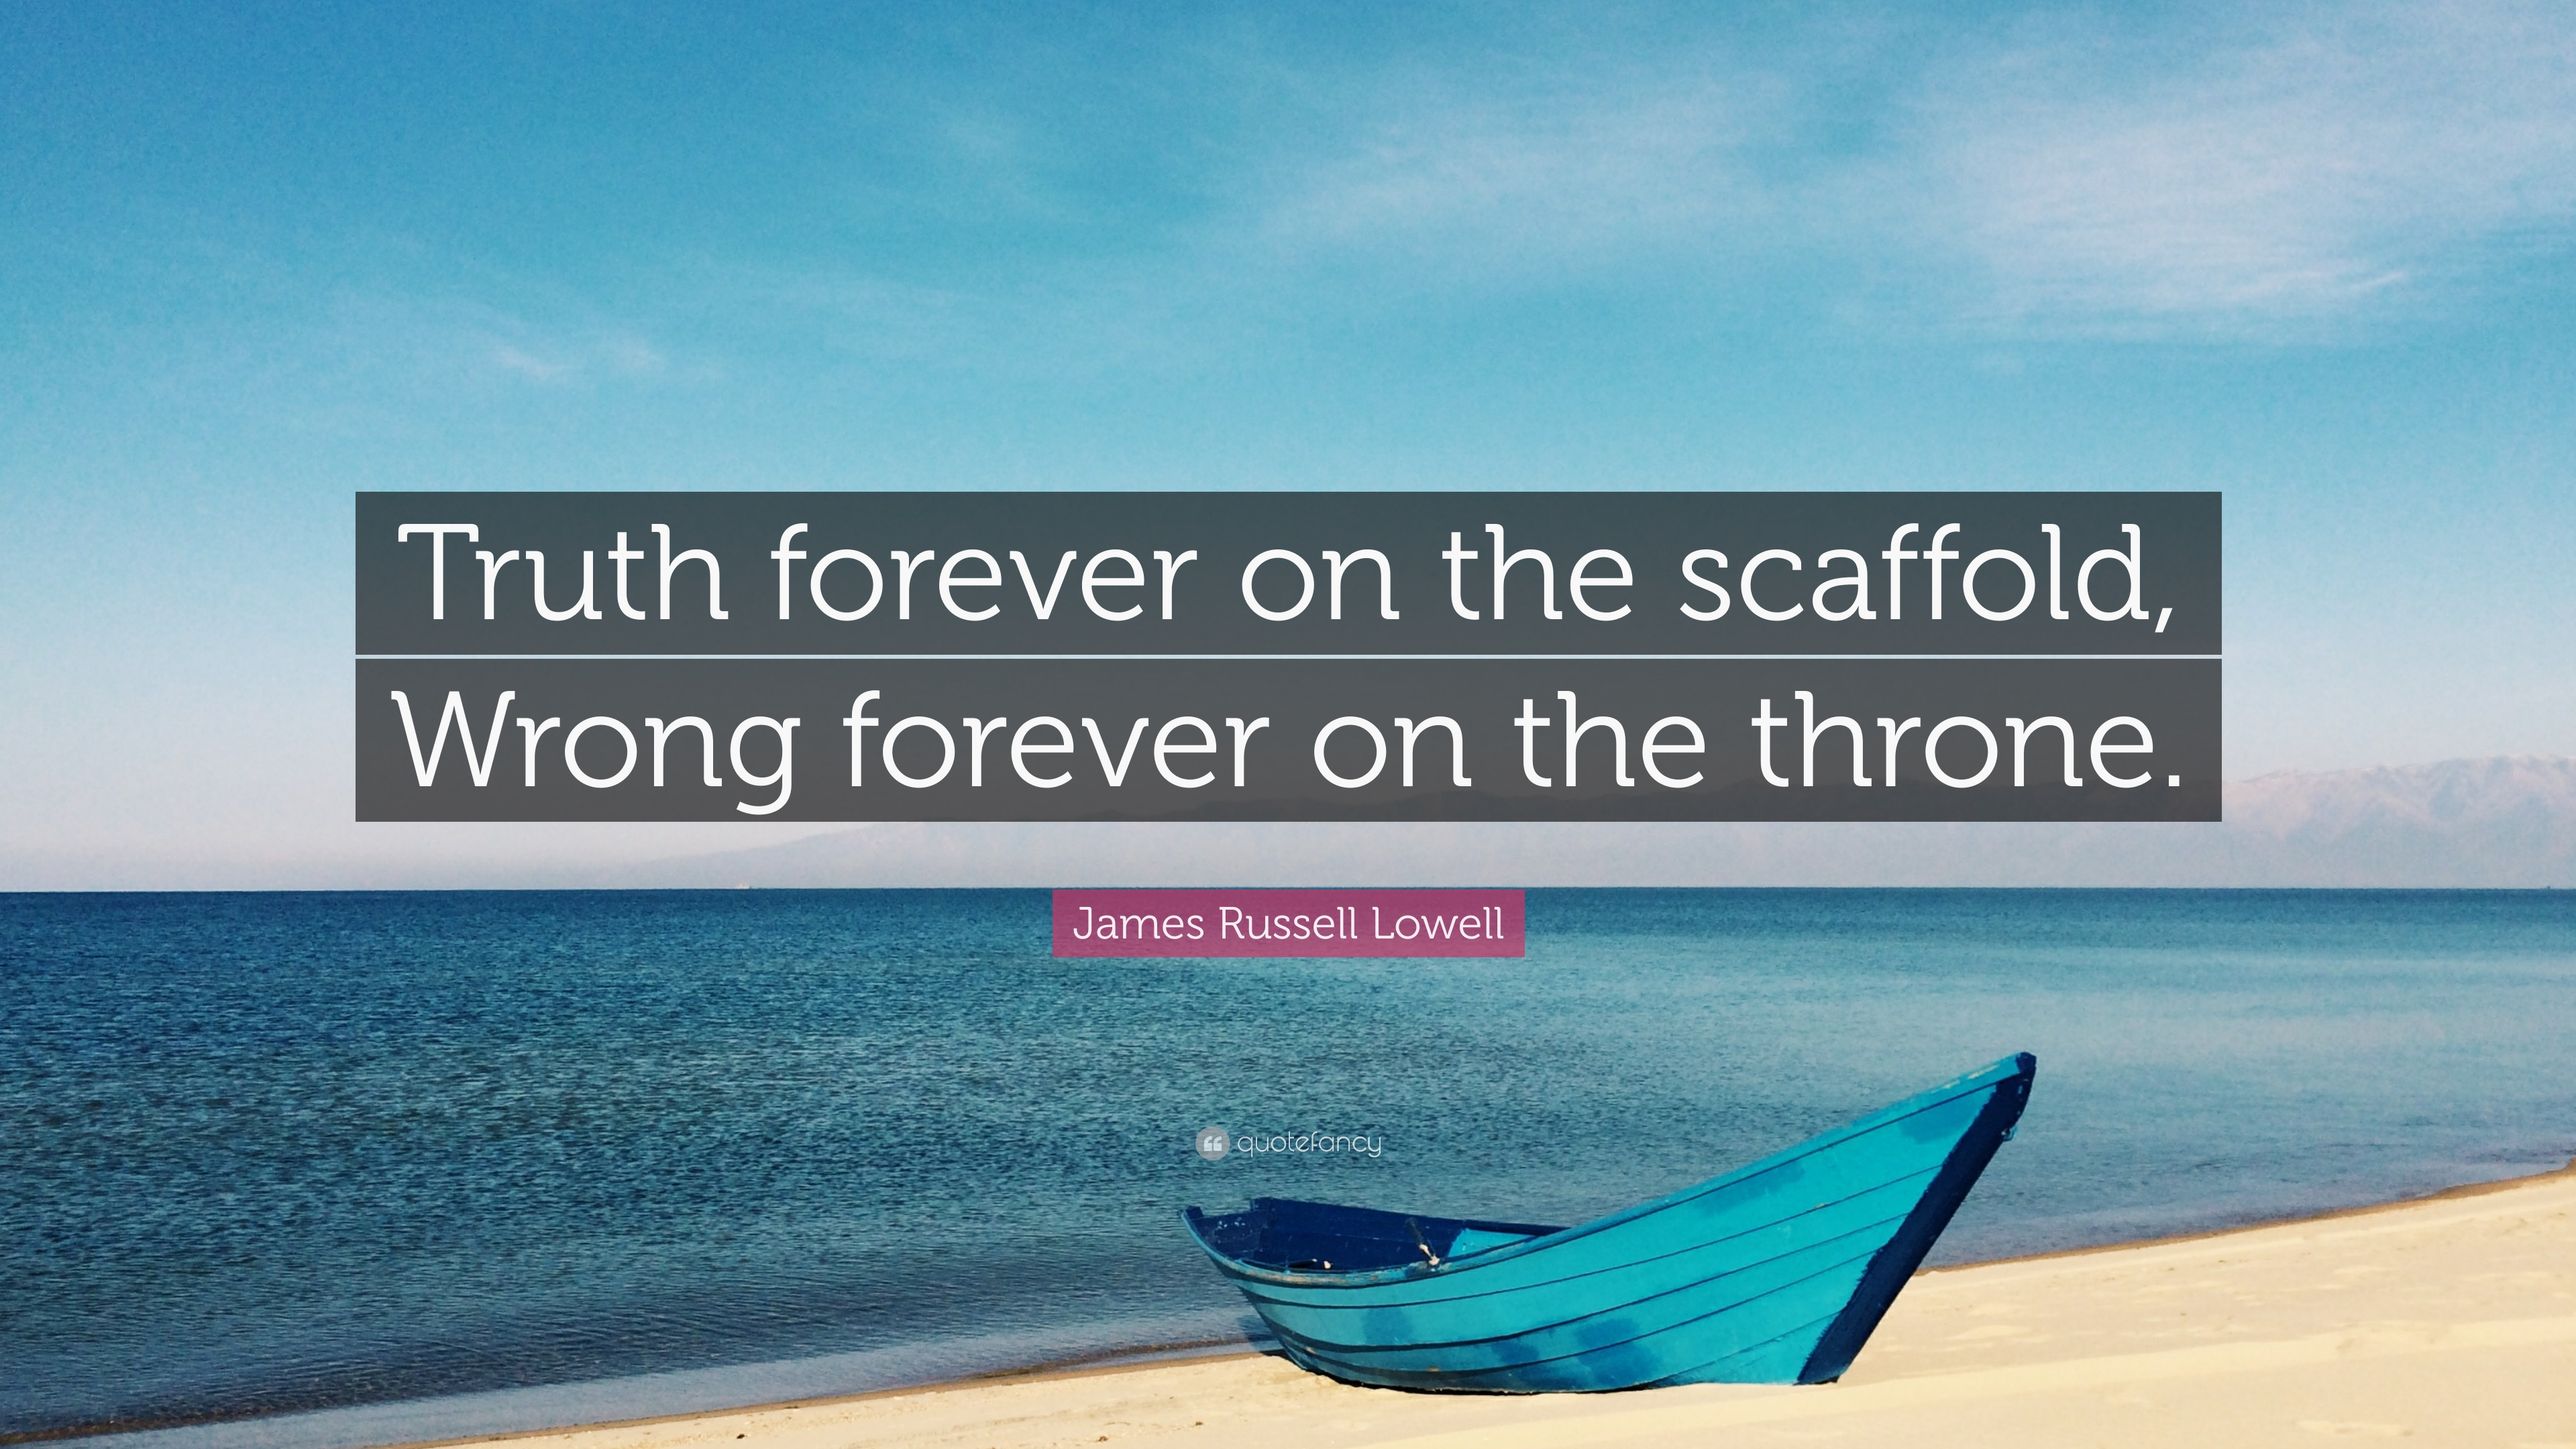 truth forever on the scaffold